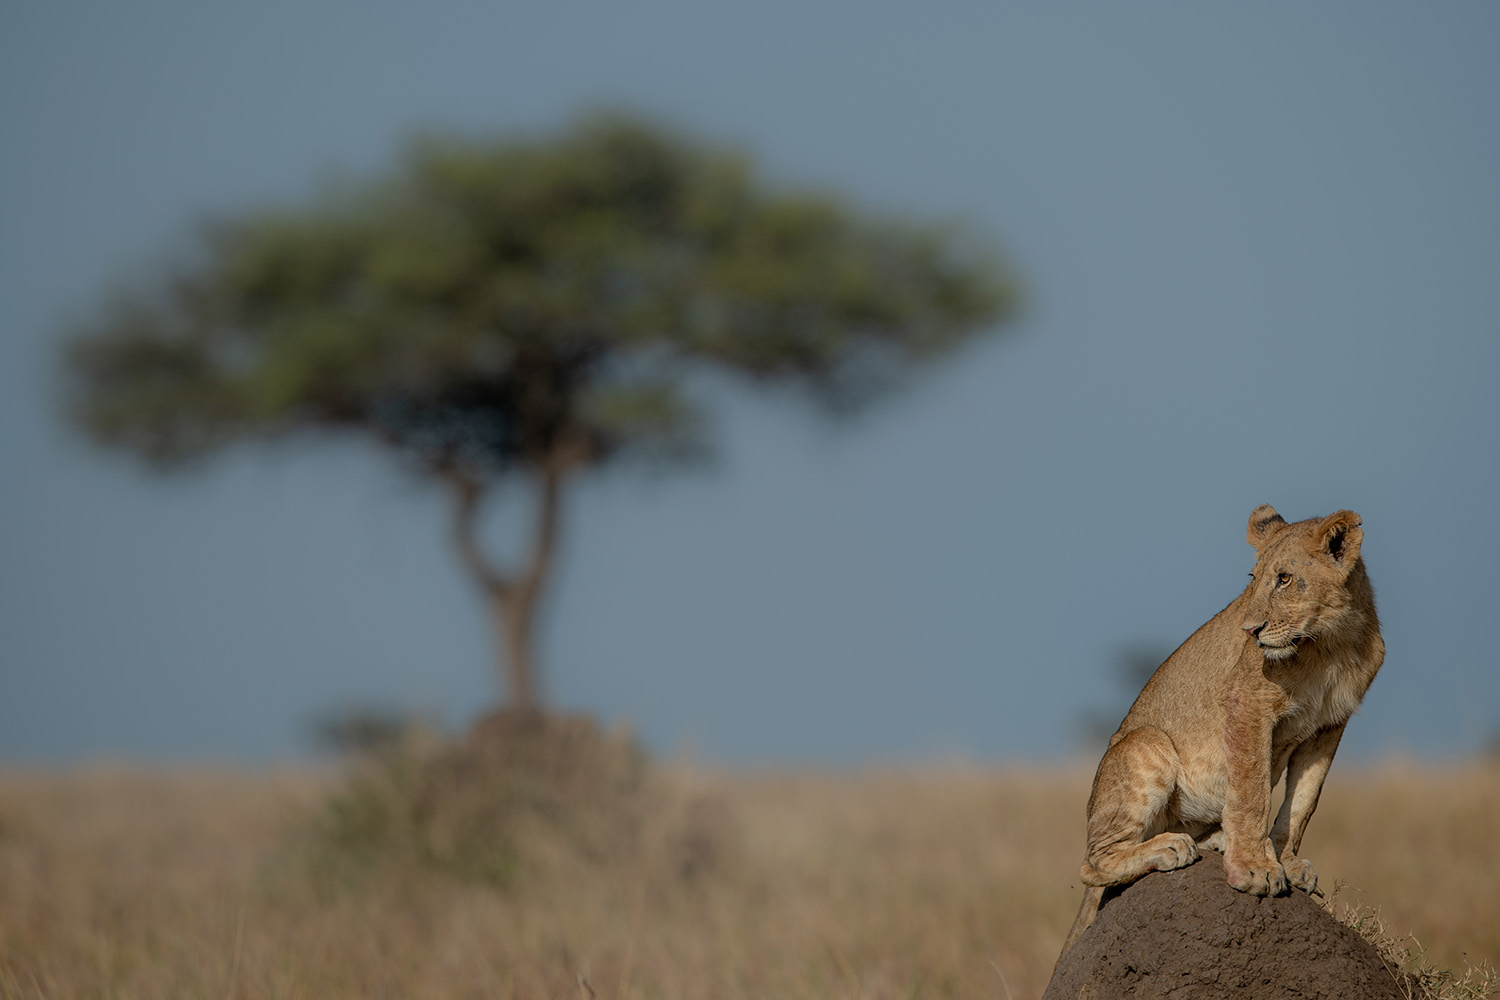 Lion on the lookout in the mara plains